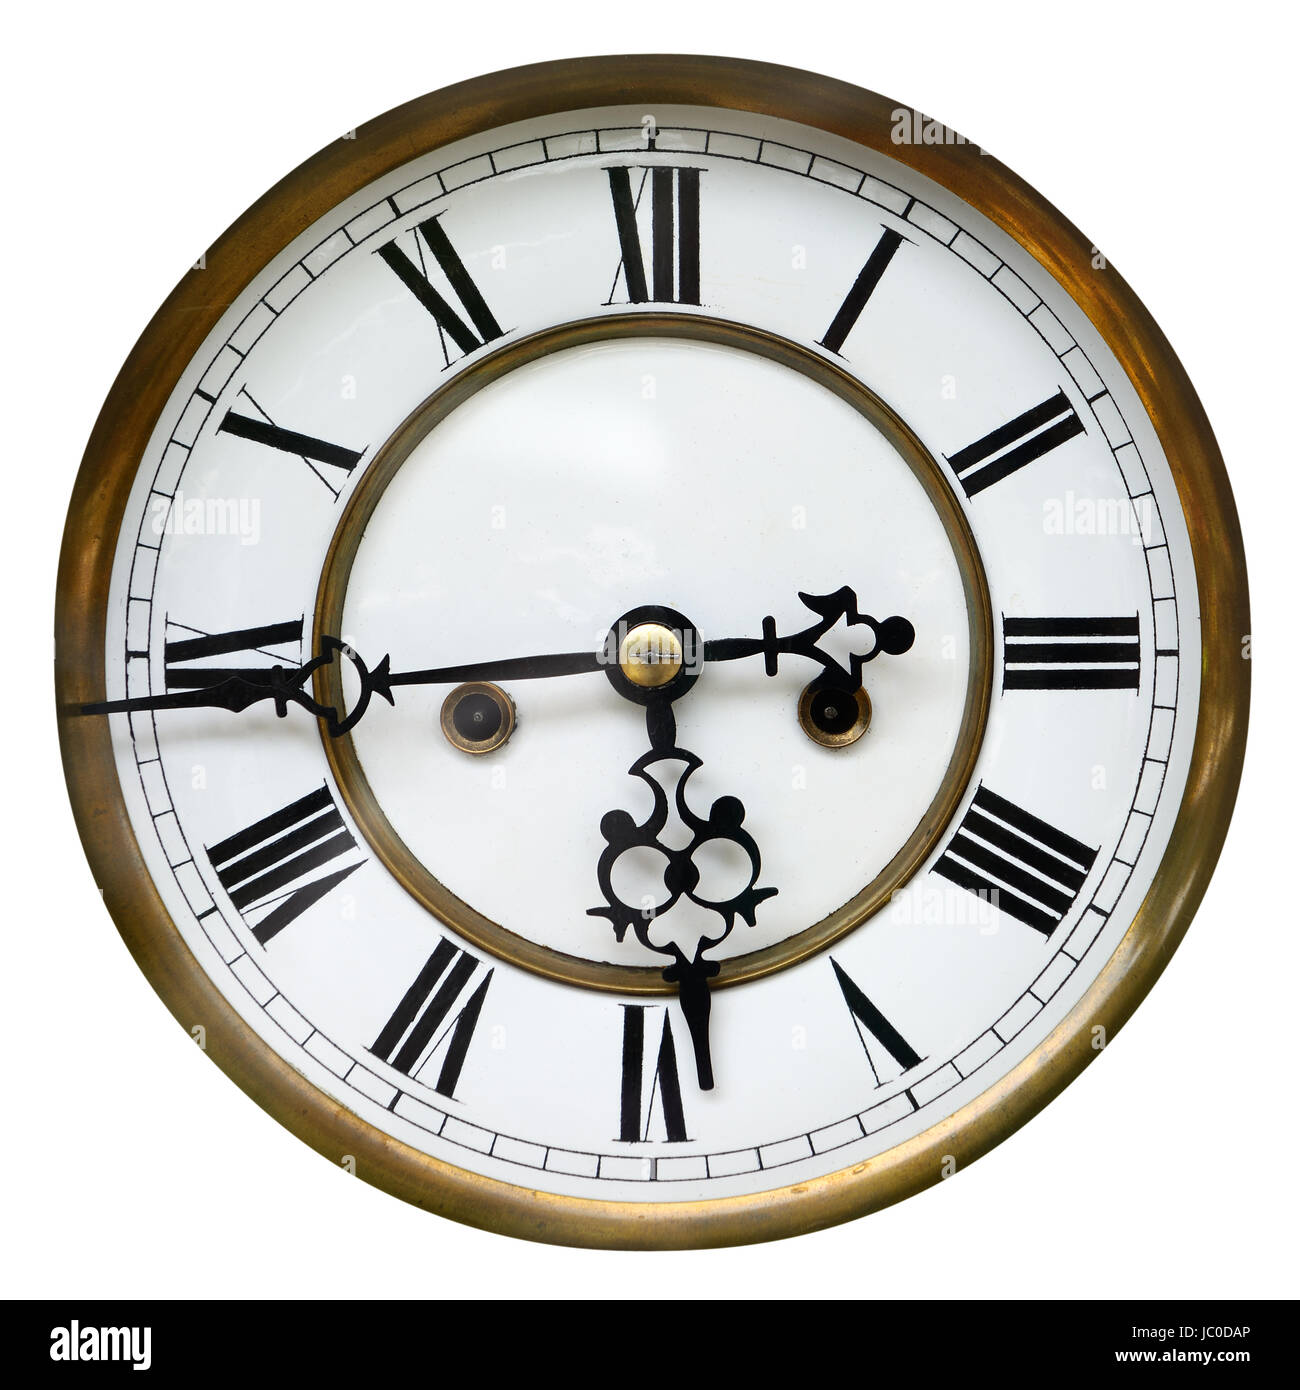 antique clock face showing the time sixteen to six isolated on